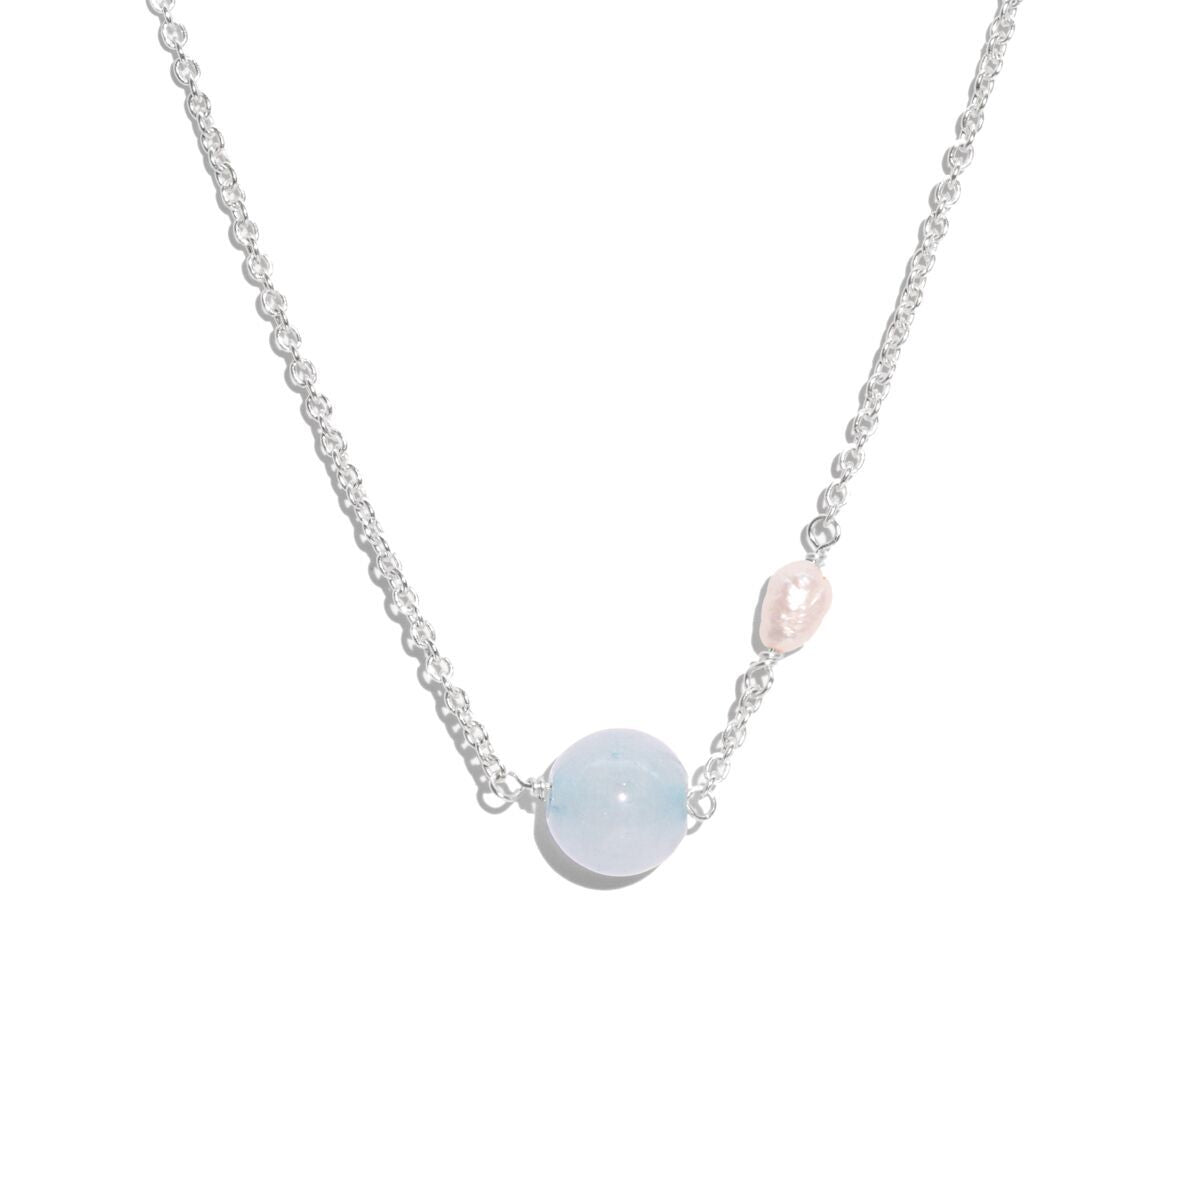 The Silver Blue Jelly Necklace